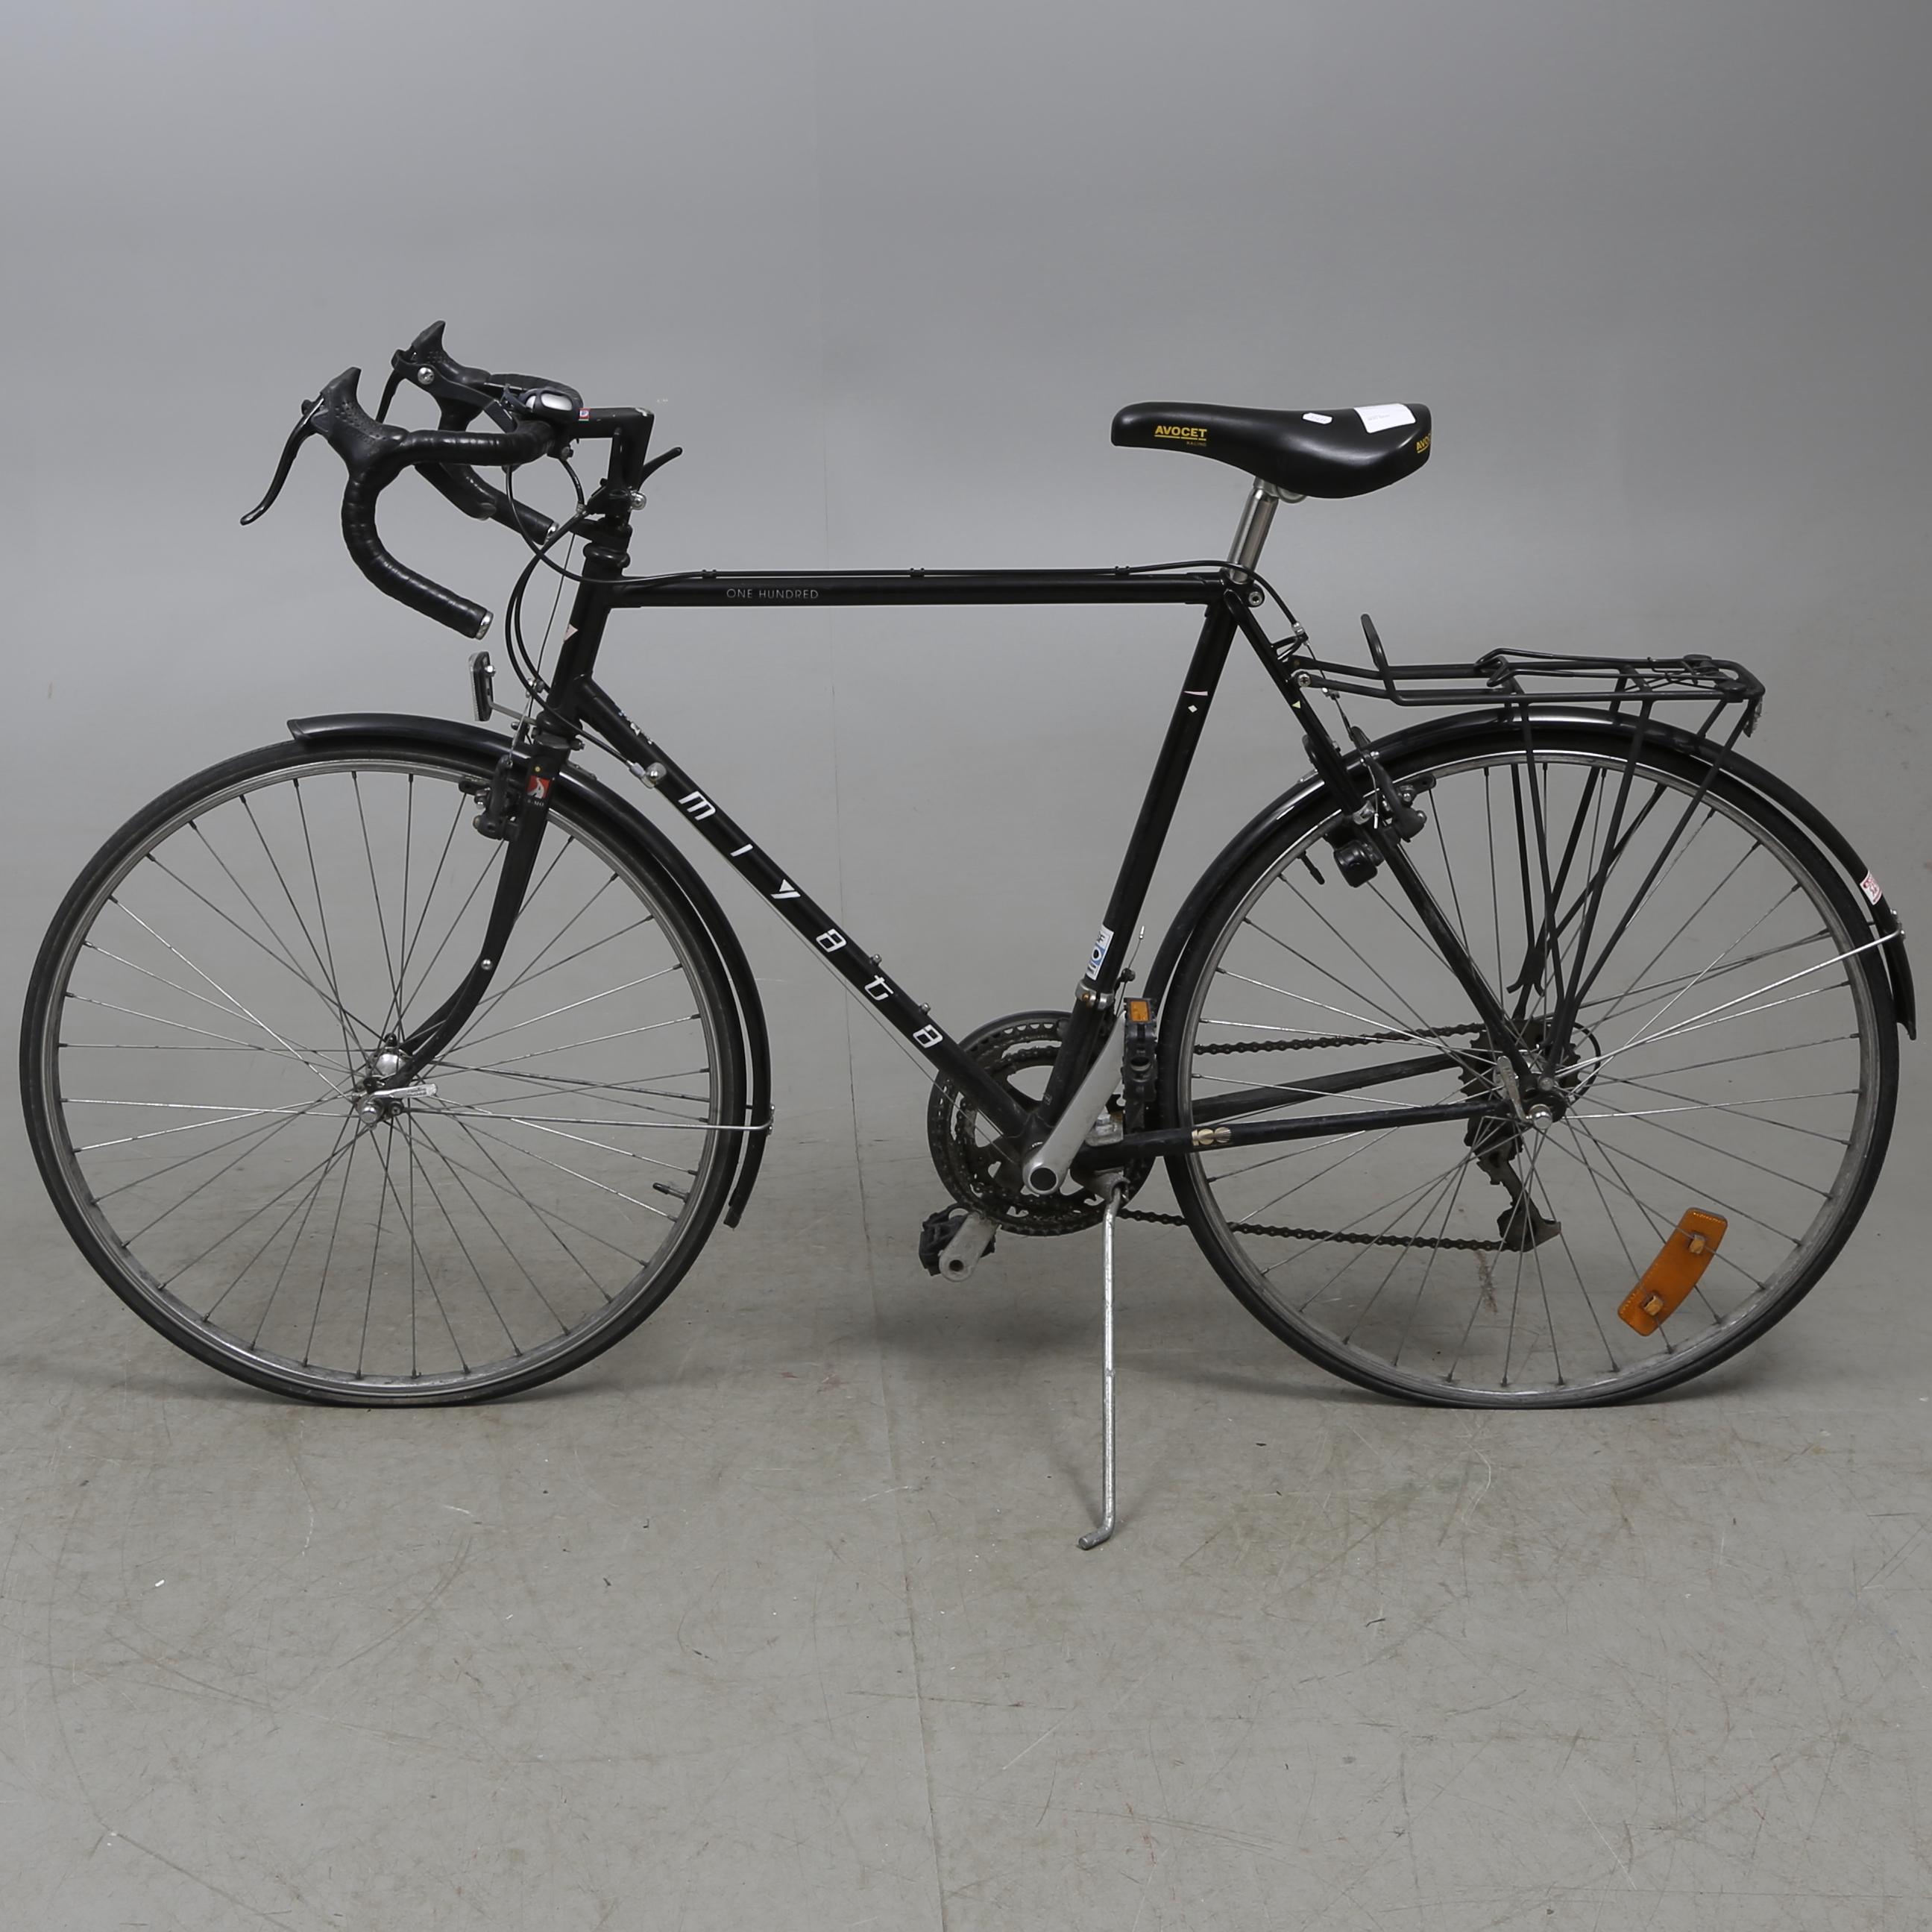 HERRCYKEL, Miyata, one hundred  Other - Bicycles & Vehicles